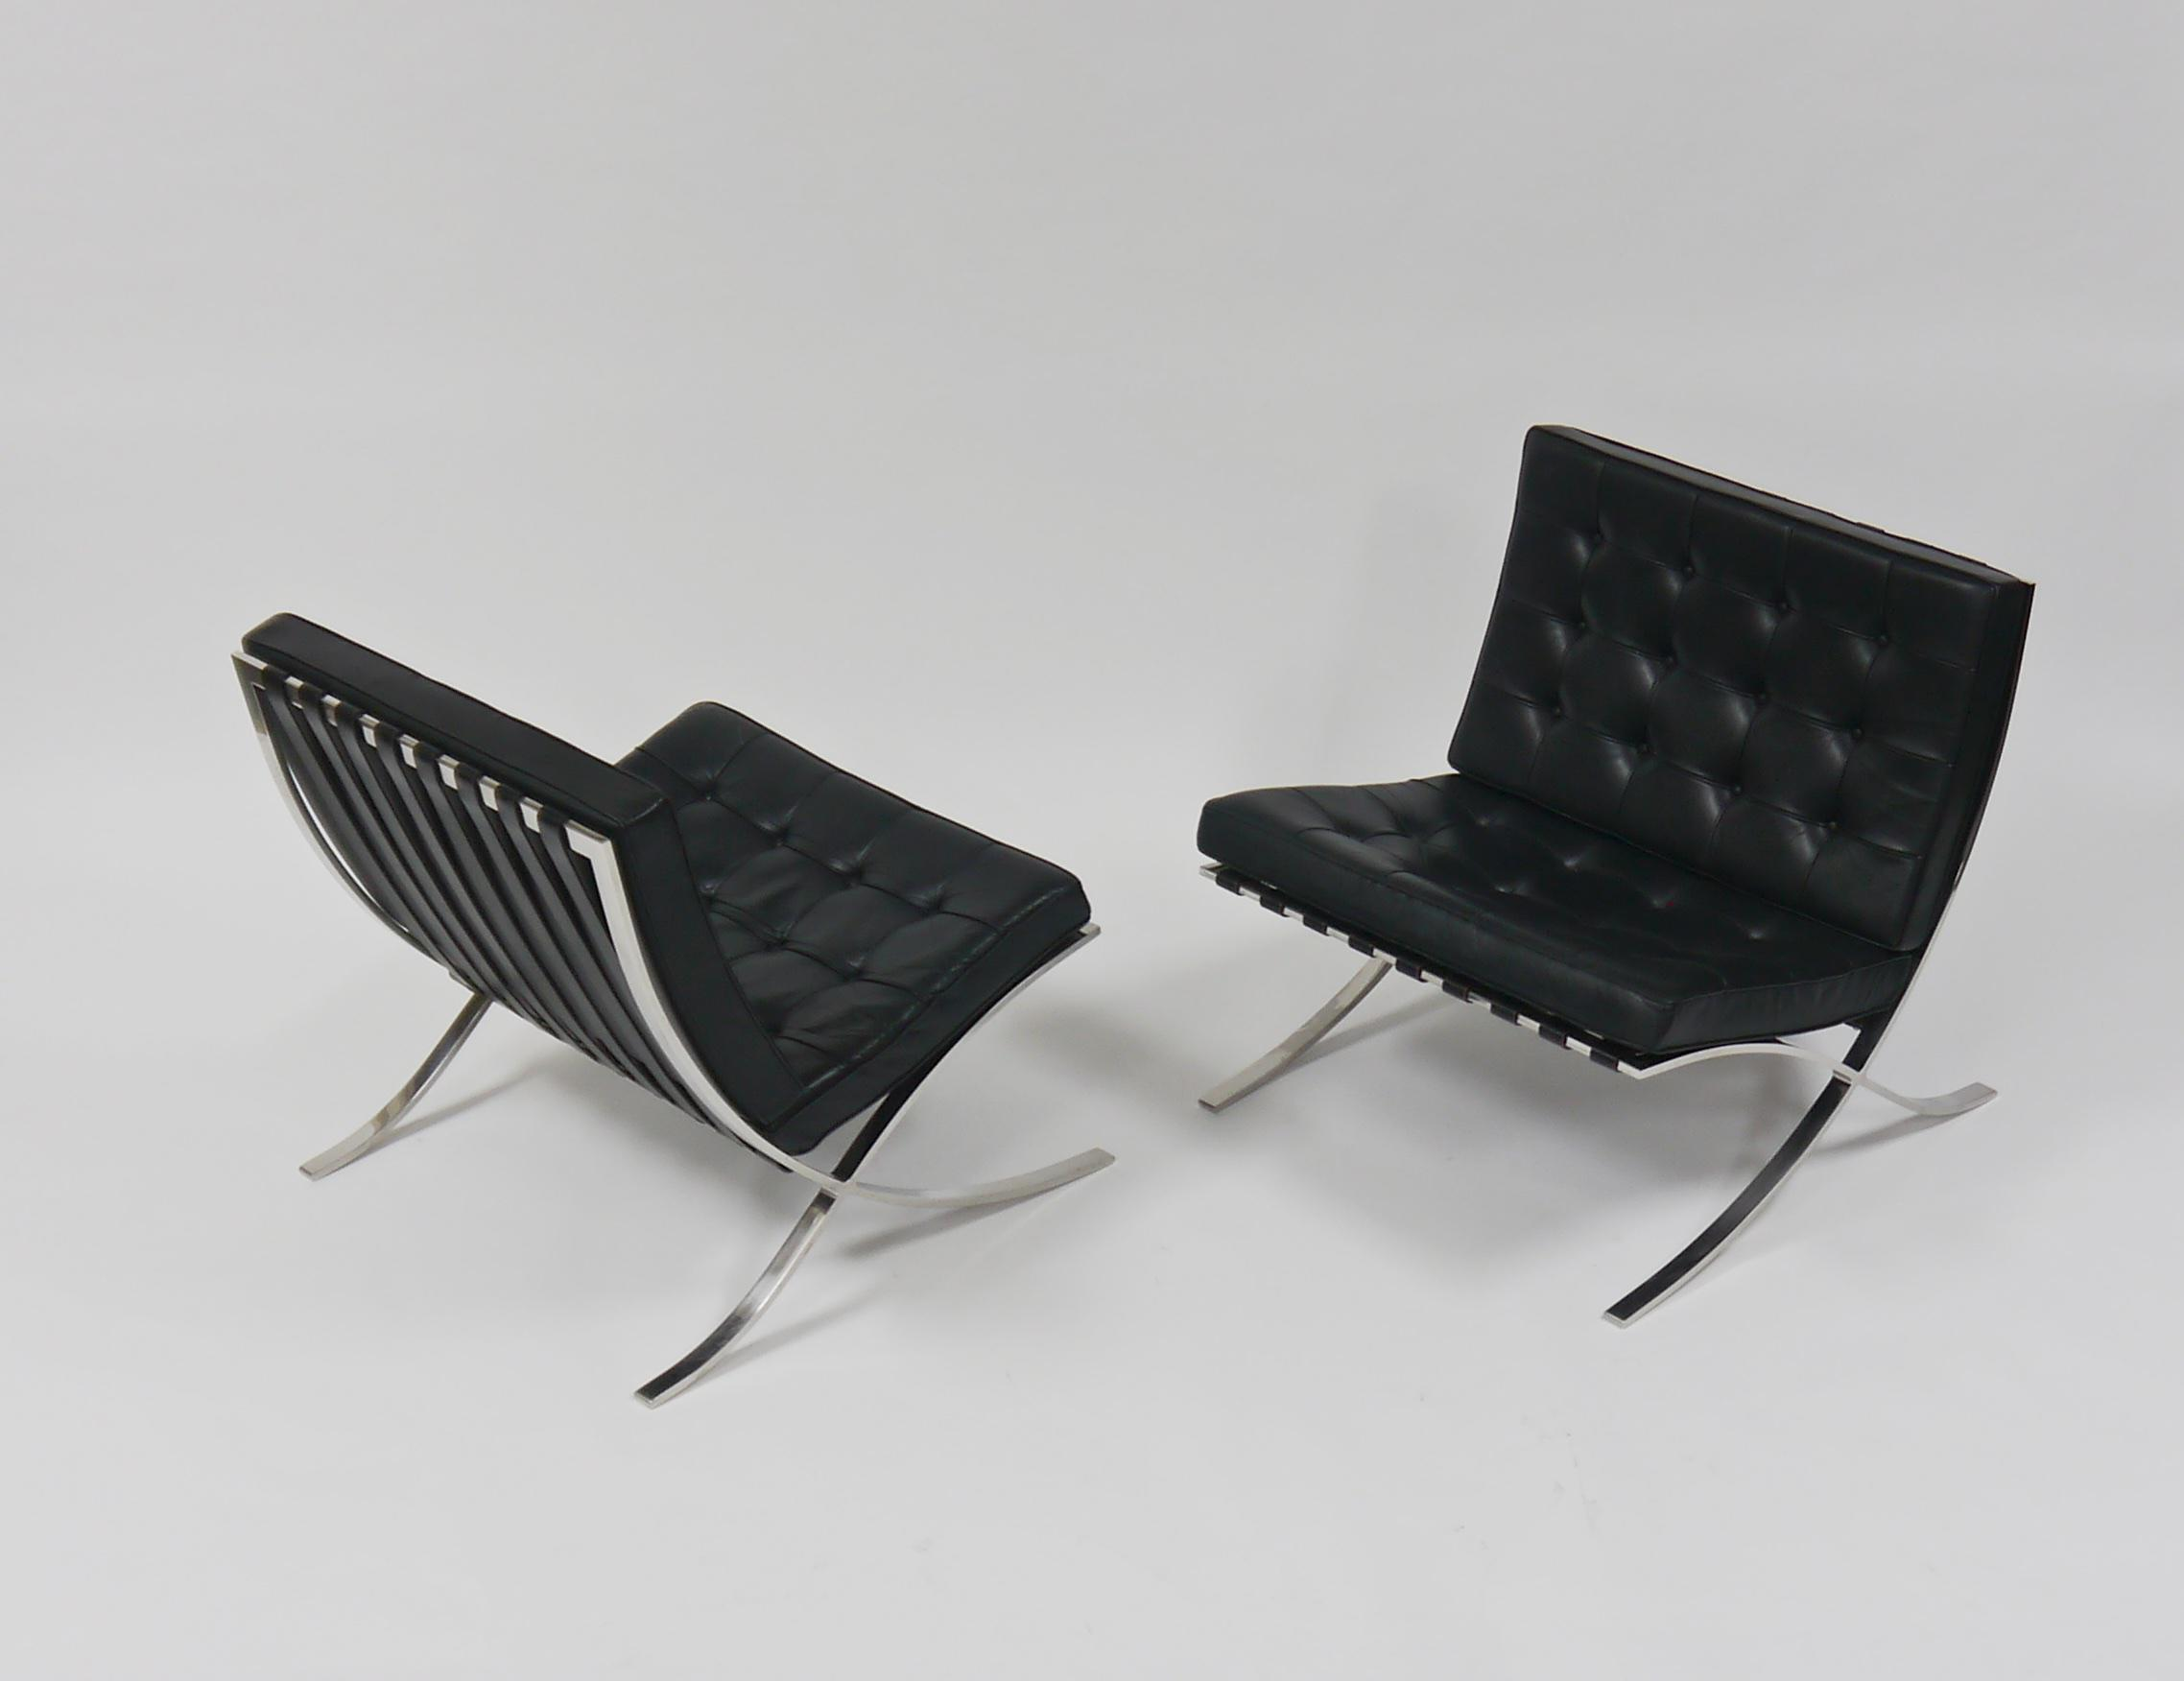 Exceptional Pair Of Barcelona Chairs By Mies Van Der Rohe For Knoll   Image  10 Of